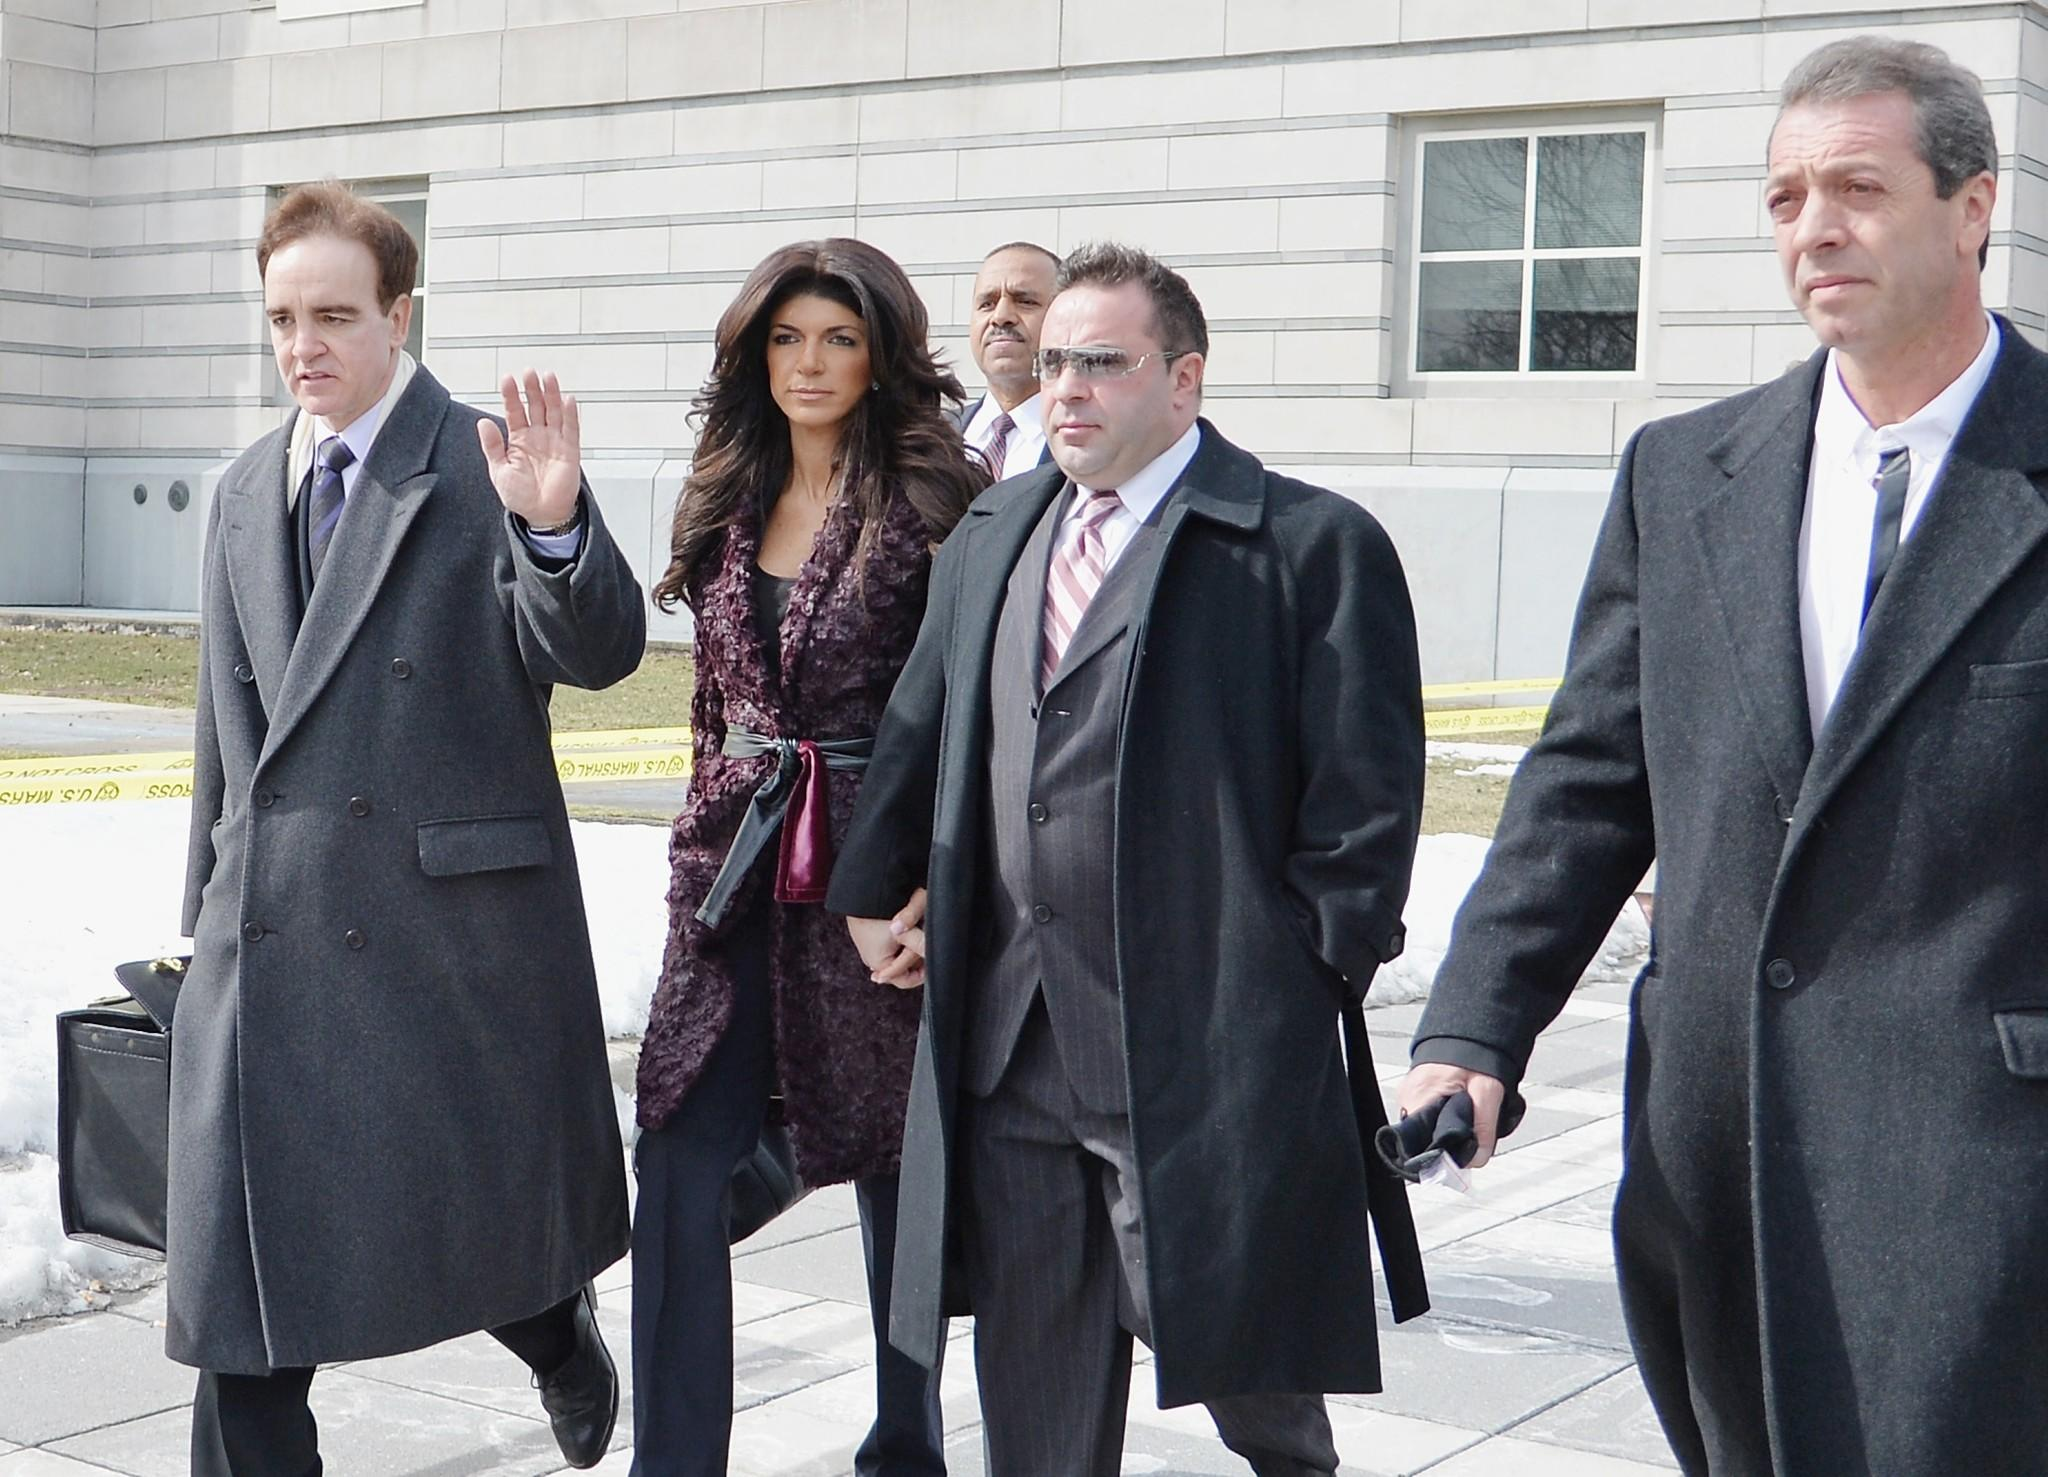 Teresa Giudice (L) and Joe Giudice leave court after facing charges of defrauding lenders, illegally obtaining mortgages and other loans as well as allegedly hiding assets and income during a bankruptcy case.